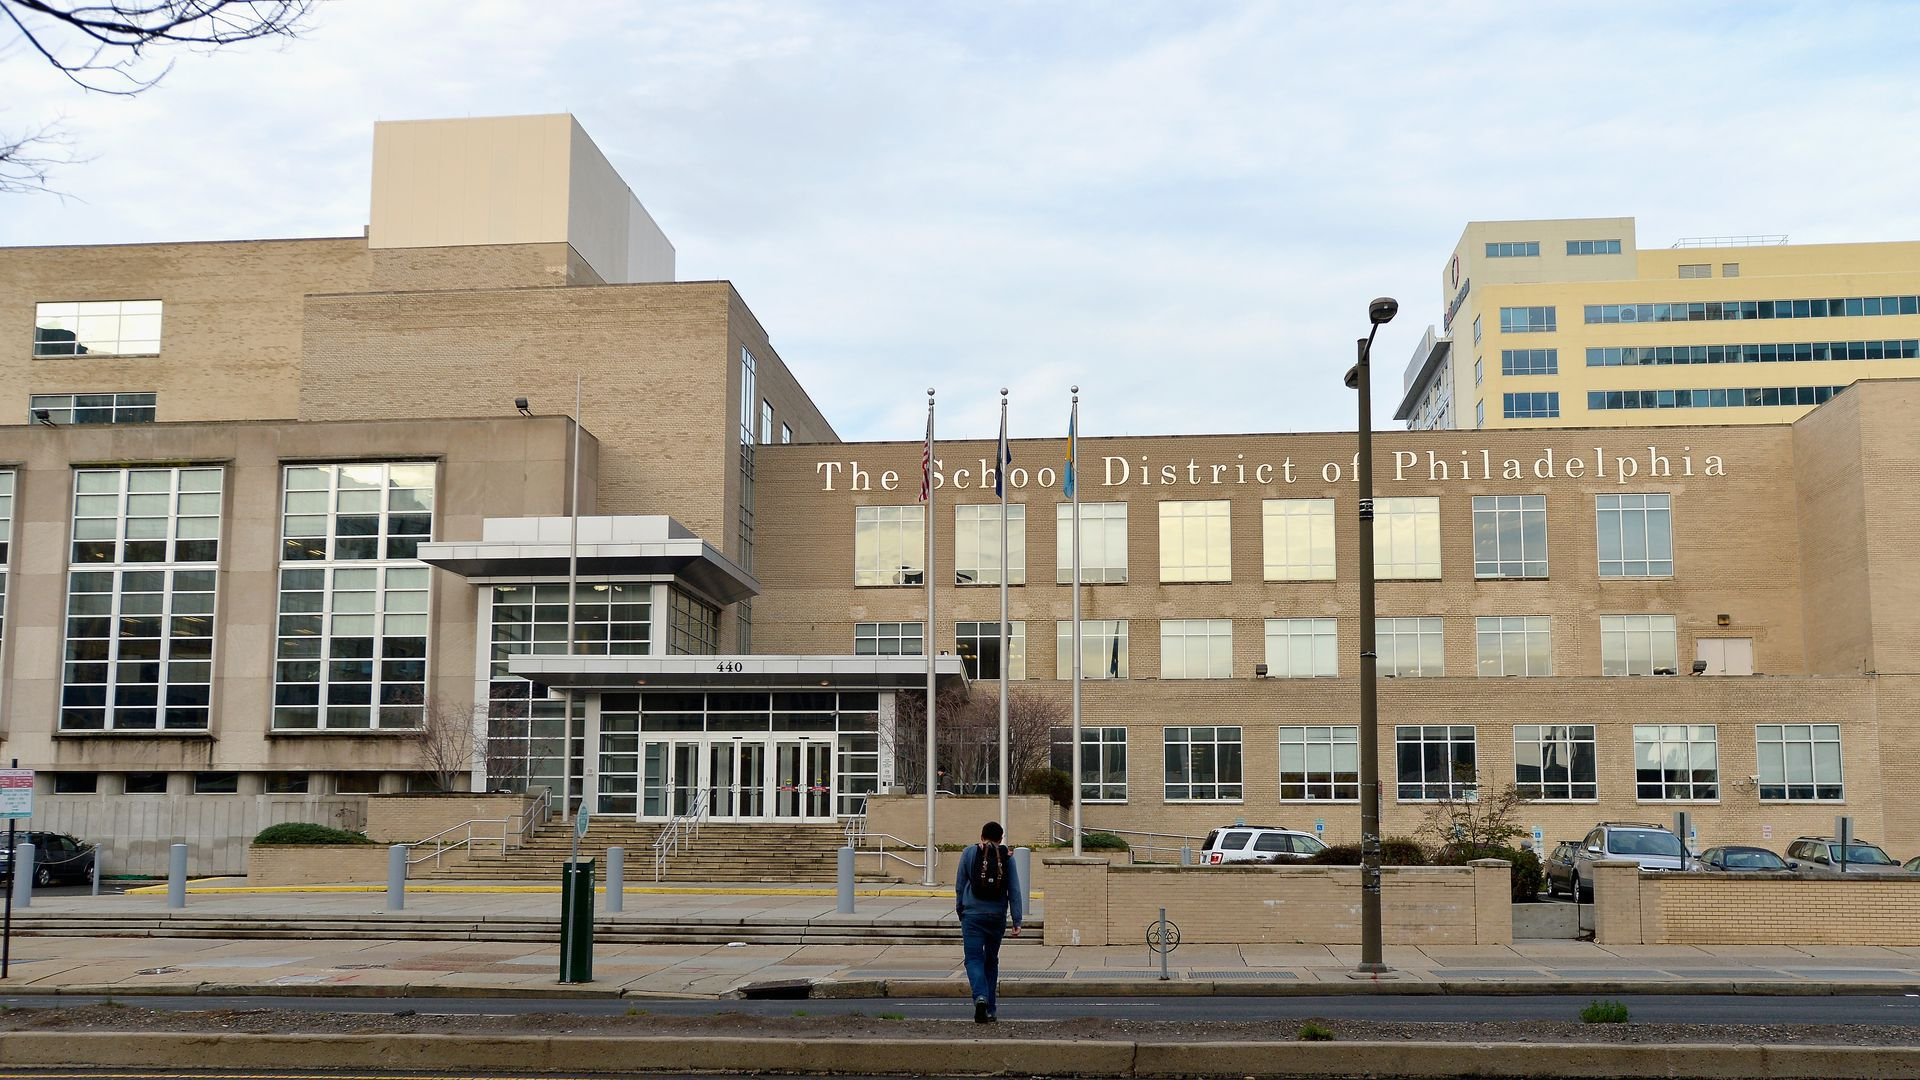 A general view of the School District of Philadelphia offices on December 31, 2015. Photo by Paul Marotta/Getty Images